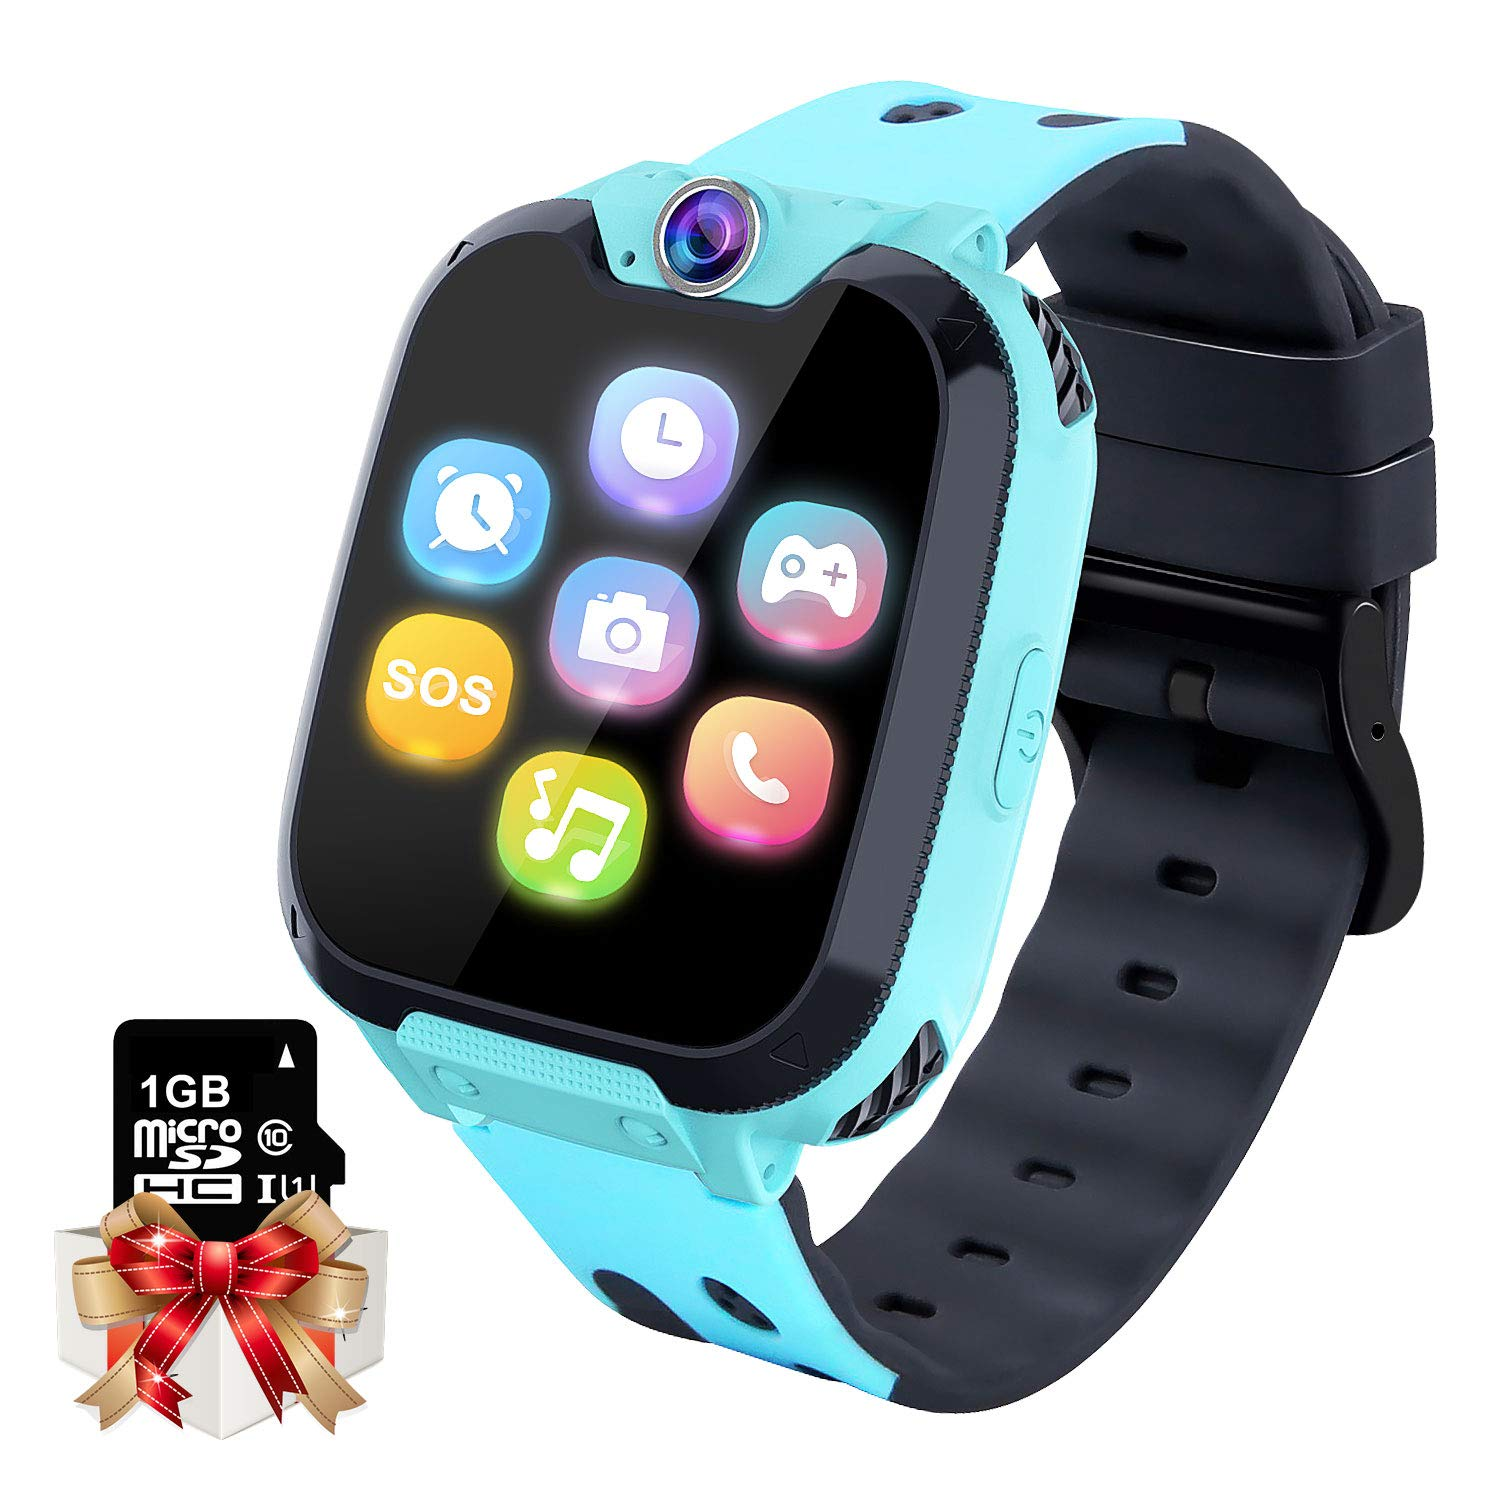 Smartwatch para Niños Game Watch: Amazon.es: Electrónica